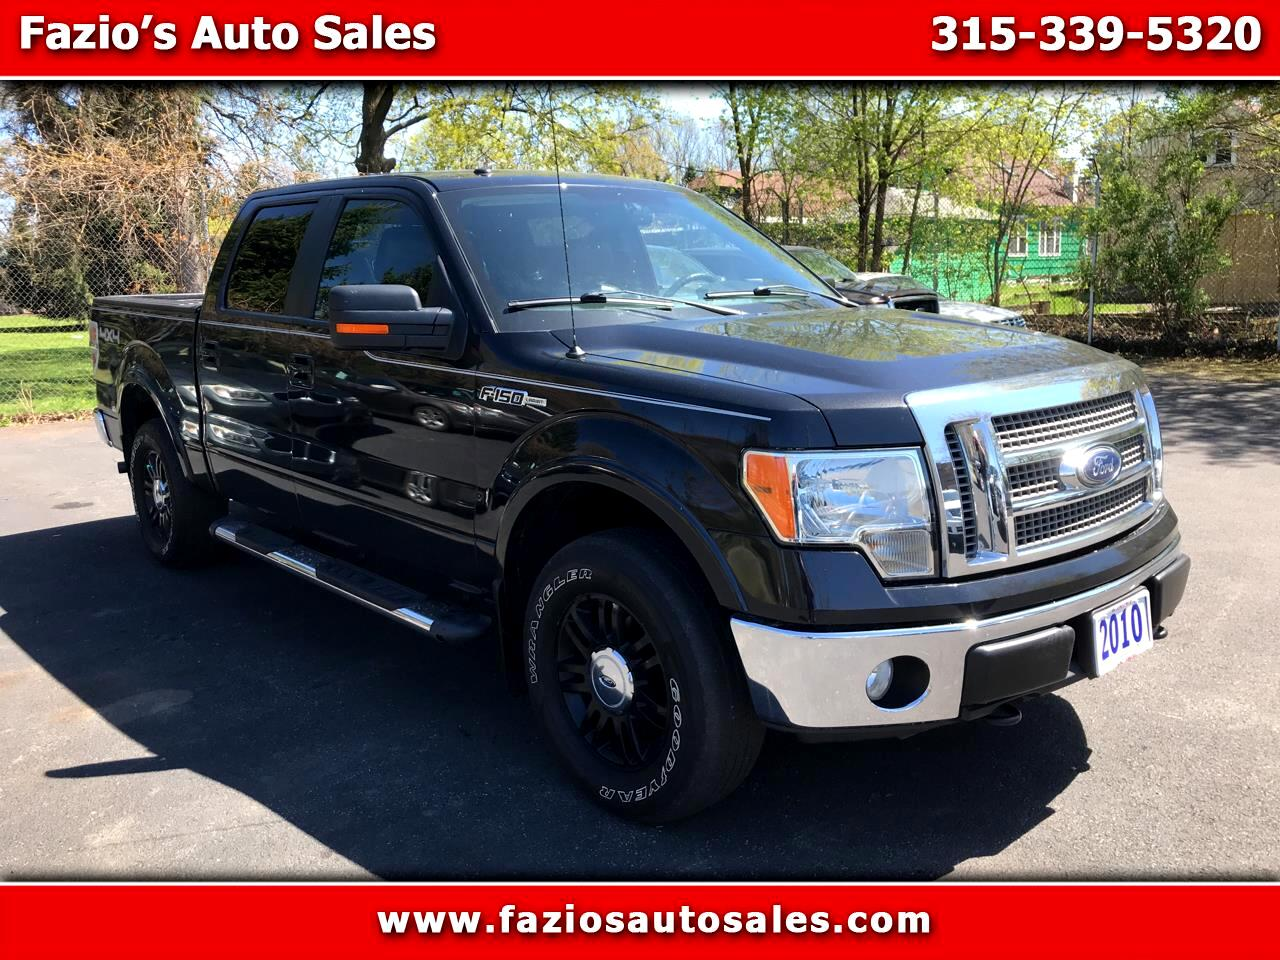 2010 Ford F-150 SuperCrew 139